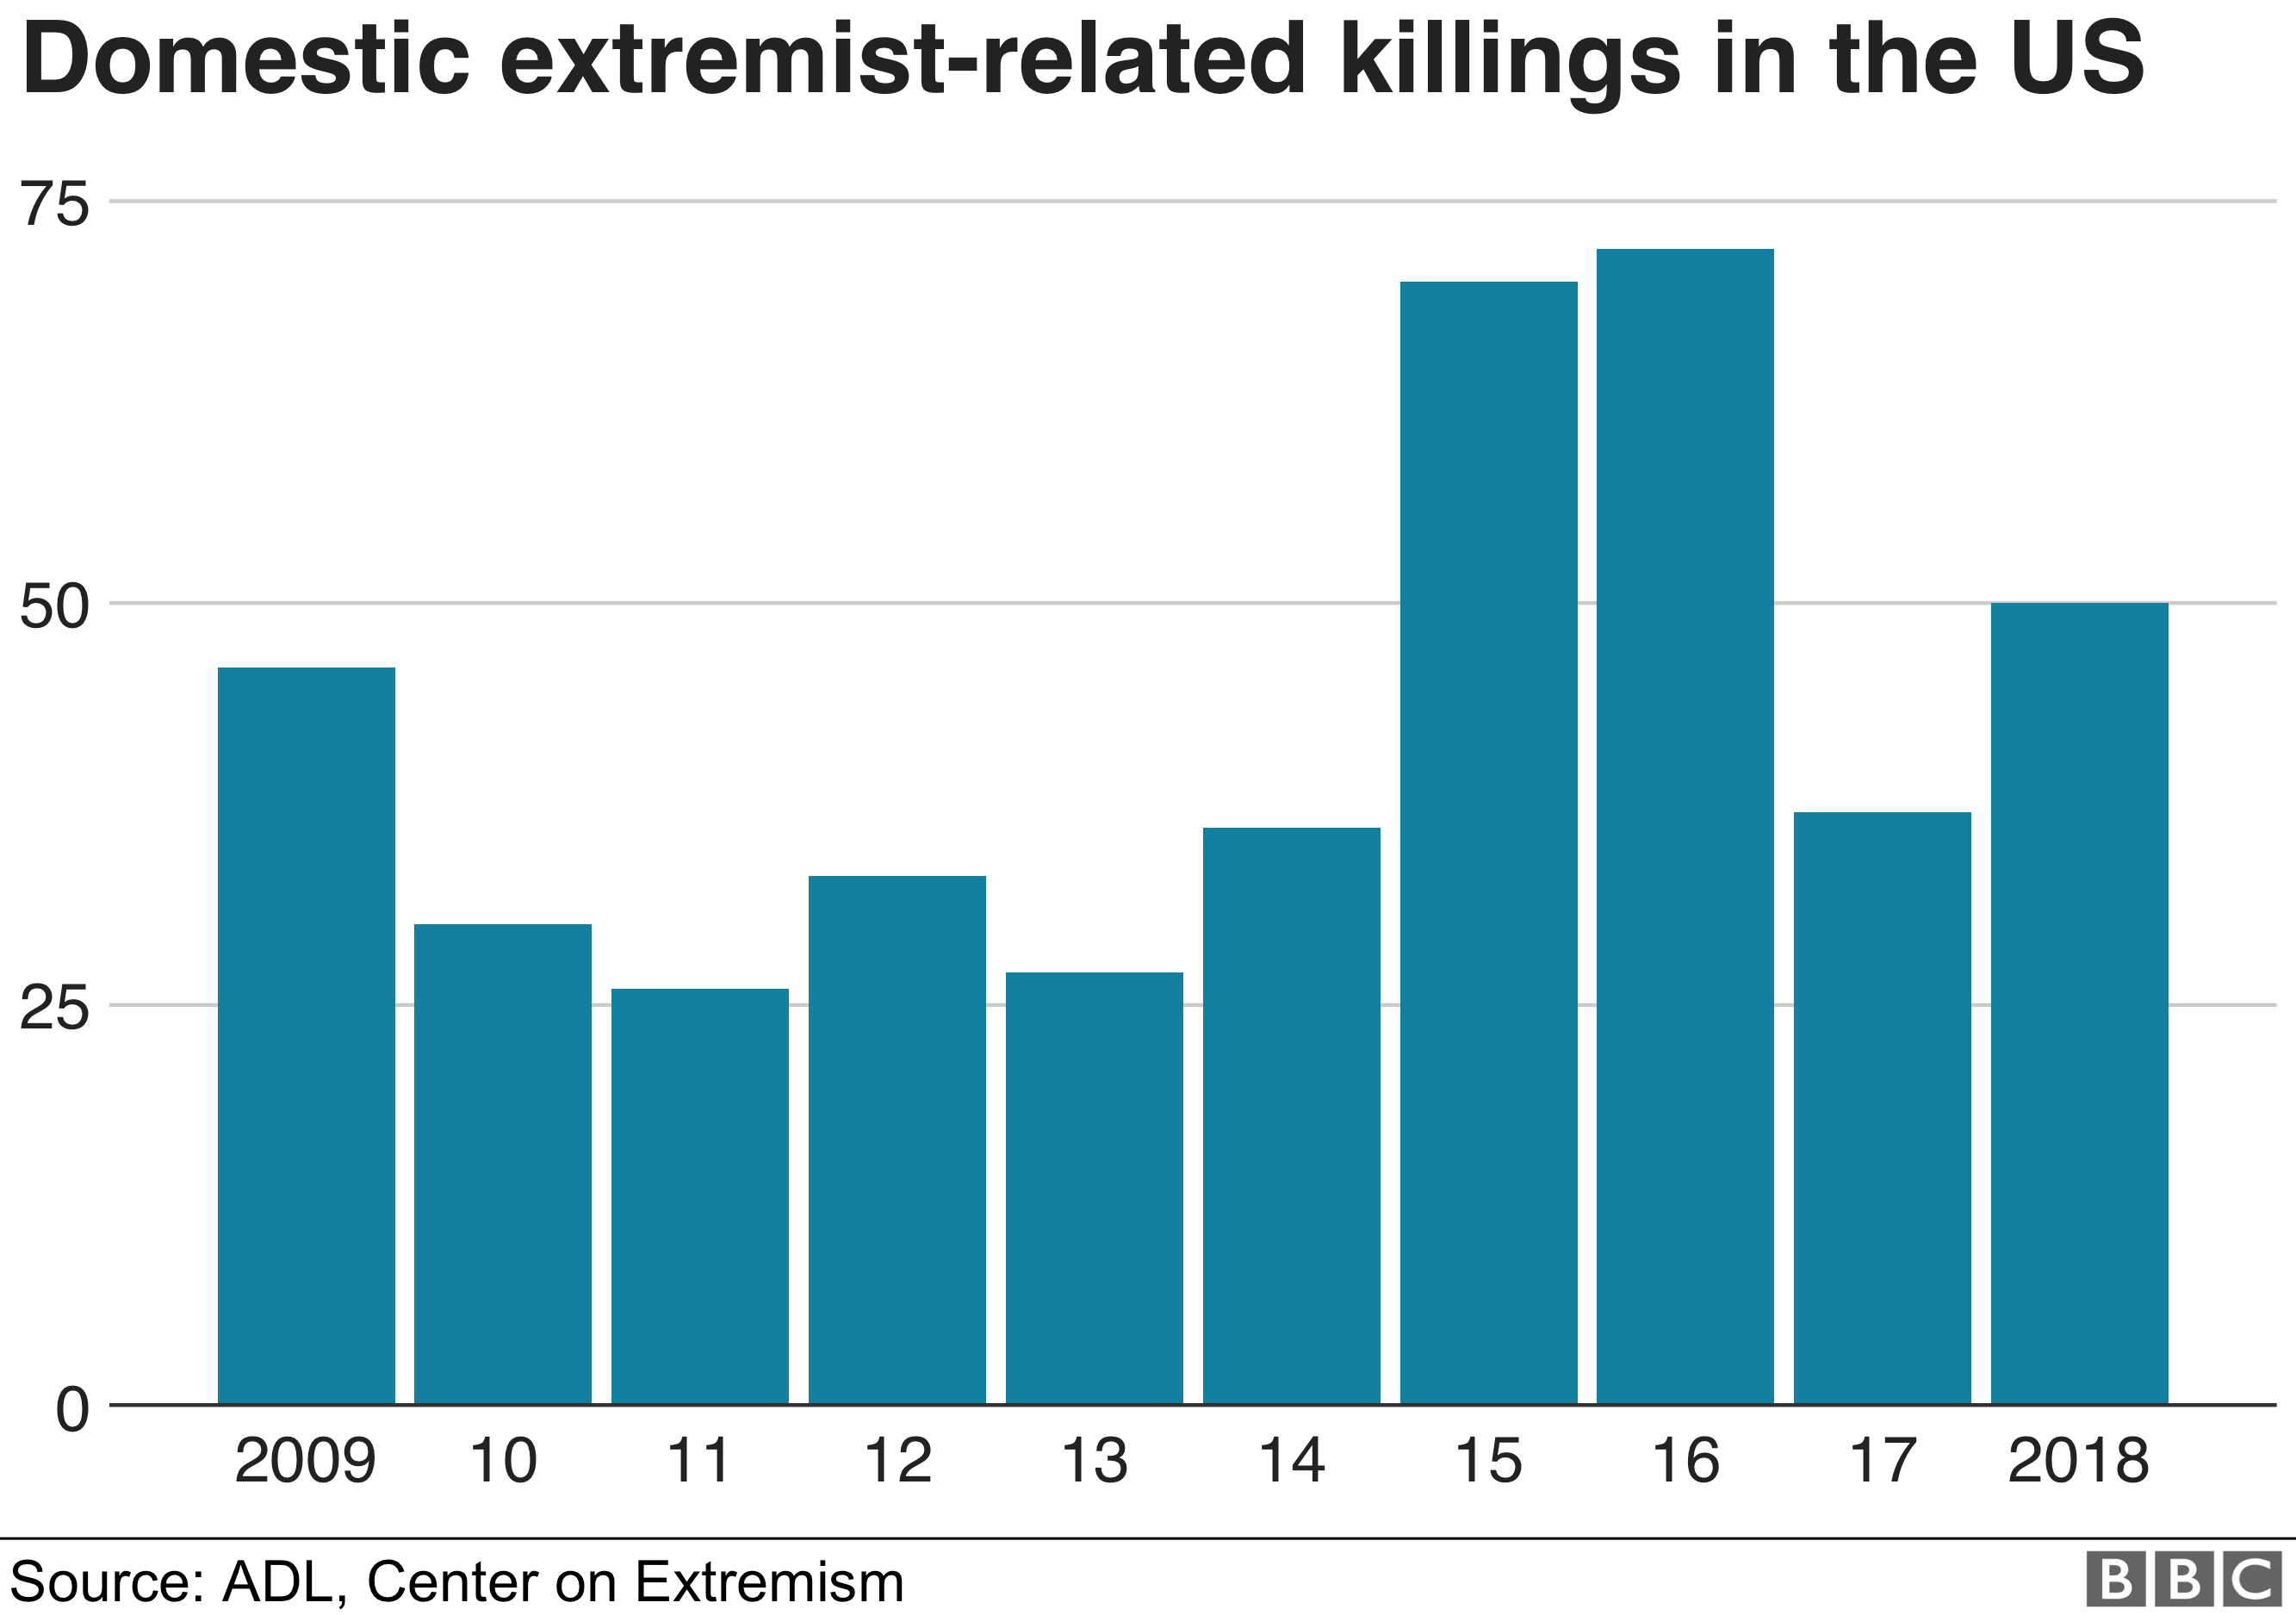 Domestic extremist cases in the US